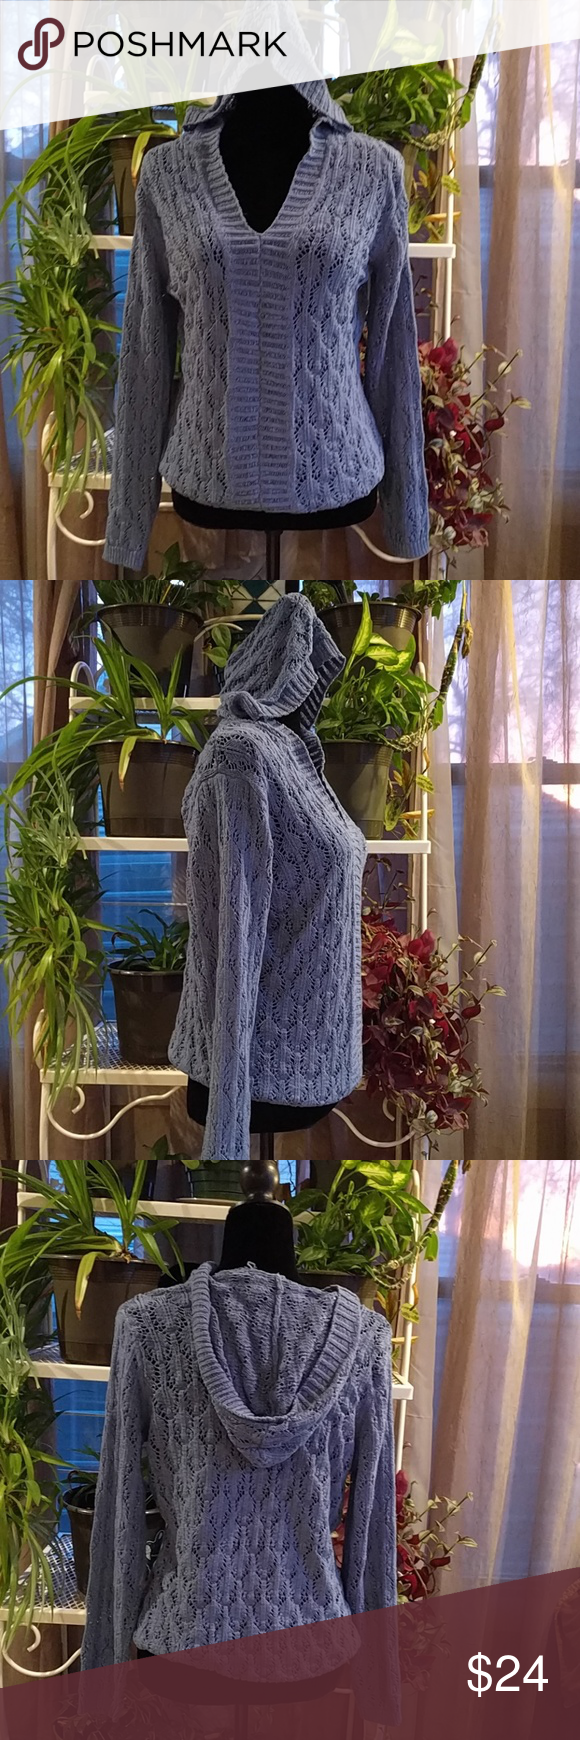 Blue Niche knit hooded sweater | Hooded sweater, Crochet style and ...